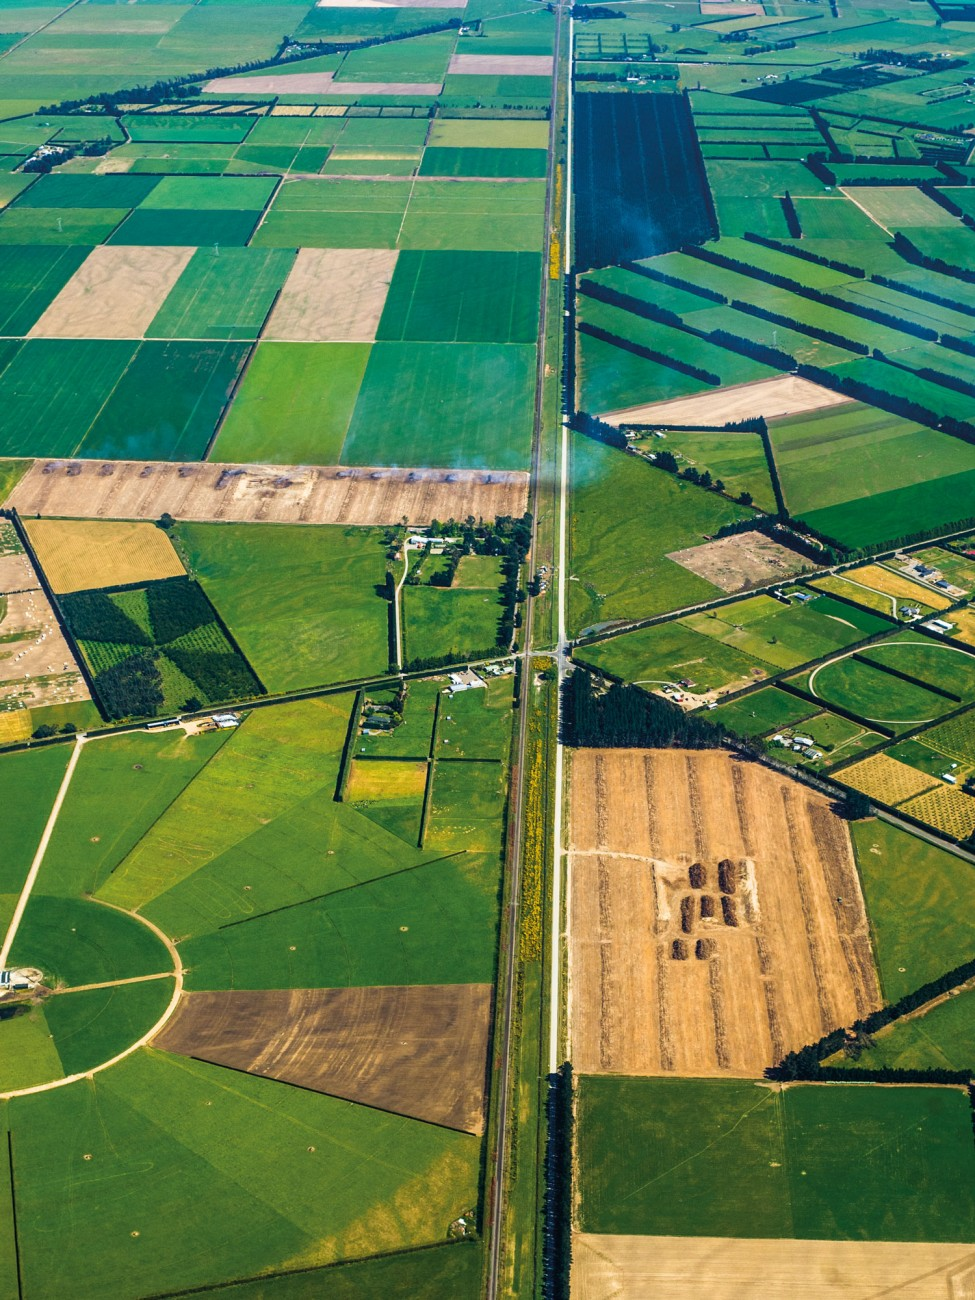 Like a jigsaw puzzle, the Canterbury Plains are a patchwork of farming systems and irrigation technologies. Since the late 1970s, the area of irrigated farmland has doubled every 12 years, most notably on the plains, now the largest irrigated area in New Zealand. In dry regions, irrigation can triple the output of a given area of land and make activities such as dairying possible even in the semi-arid Mackenzie Basin.